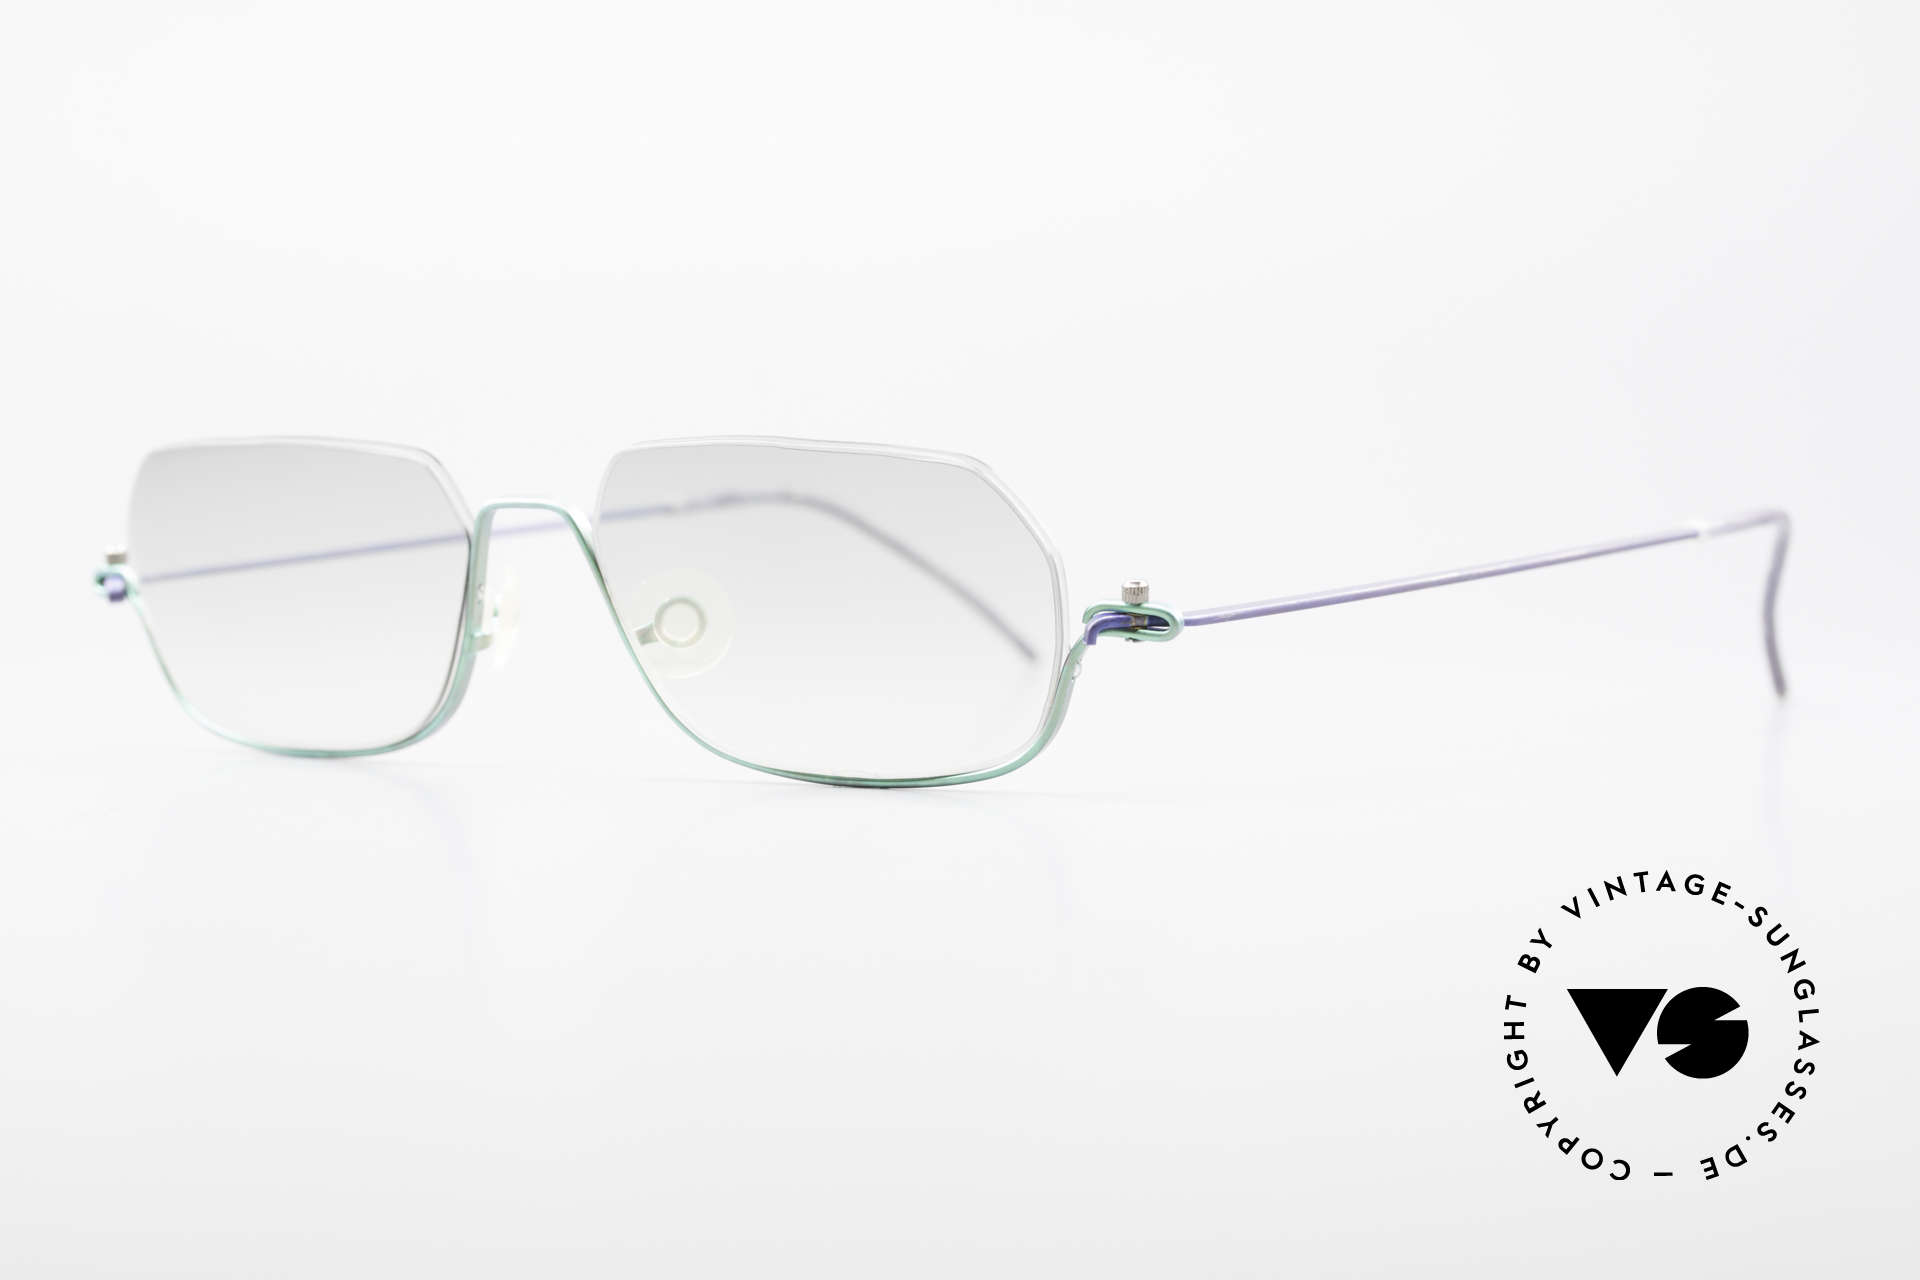 ProDesign No16 Gail Spence Designer Shades, successor of the legendary Pro Design N° ONE model, Made for Men and Women